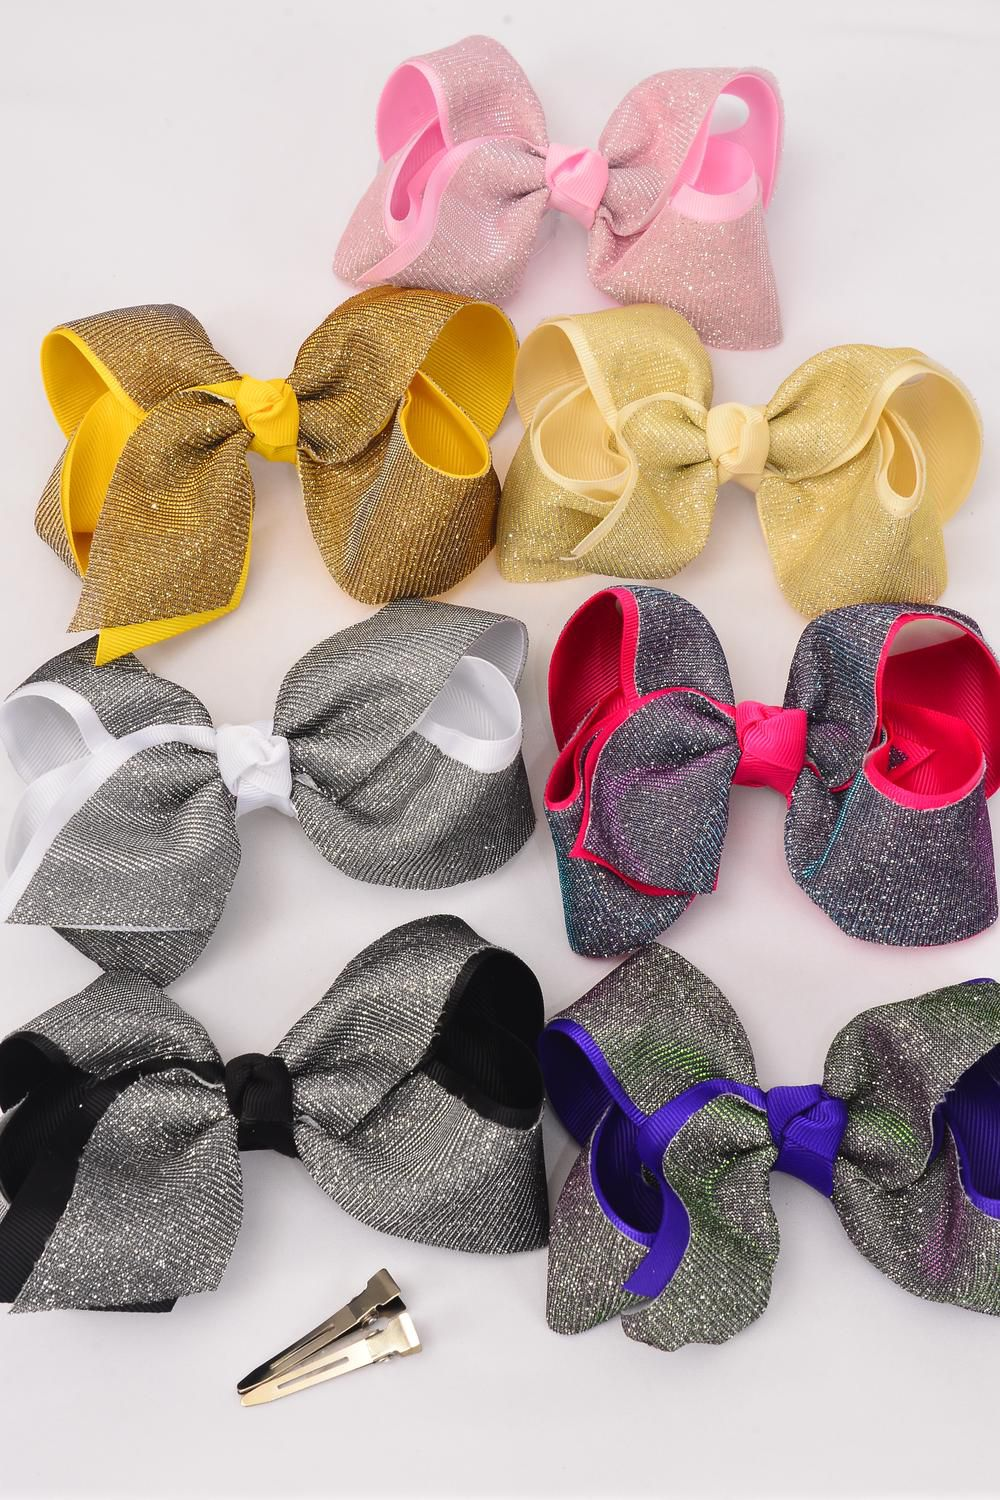 "Hair Bow Jumbo Mesh Fabric Double Layer Grosgrain Bow-tie/DZ **Multi** Alligator Clip,Size-6""x 5"" Wide,2 Black,2 Silver,2 Beige,2 Purple,2 Pink,1 Yellow,1 Blue,7 Color Asst,Hang Tag & UPC Code"